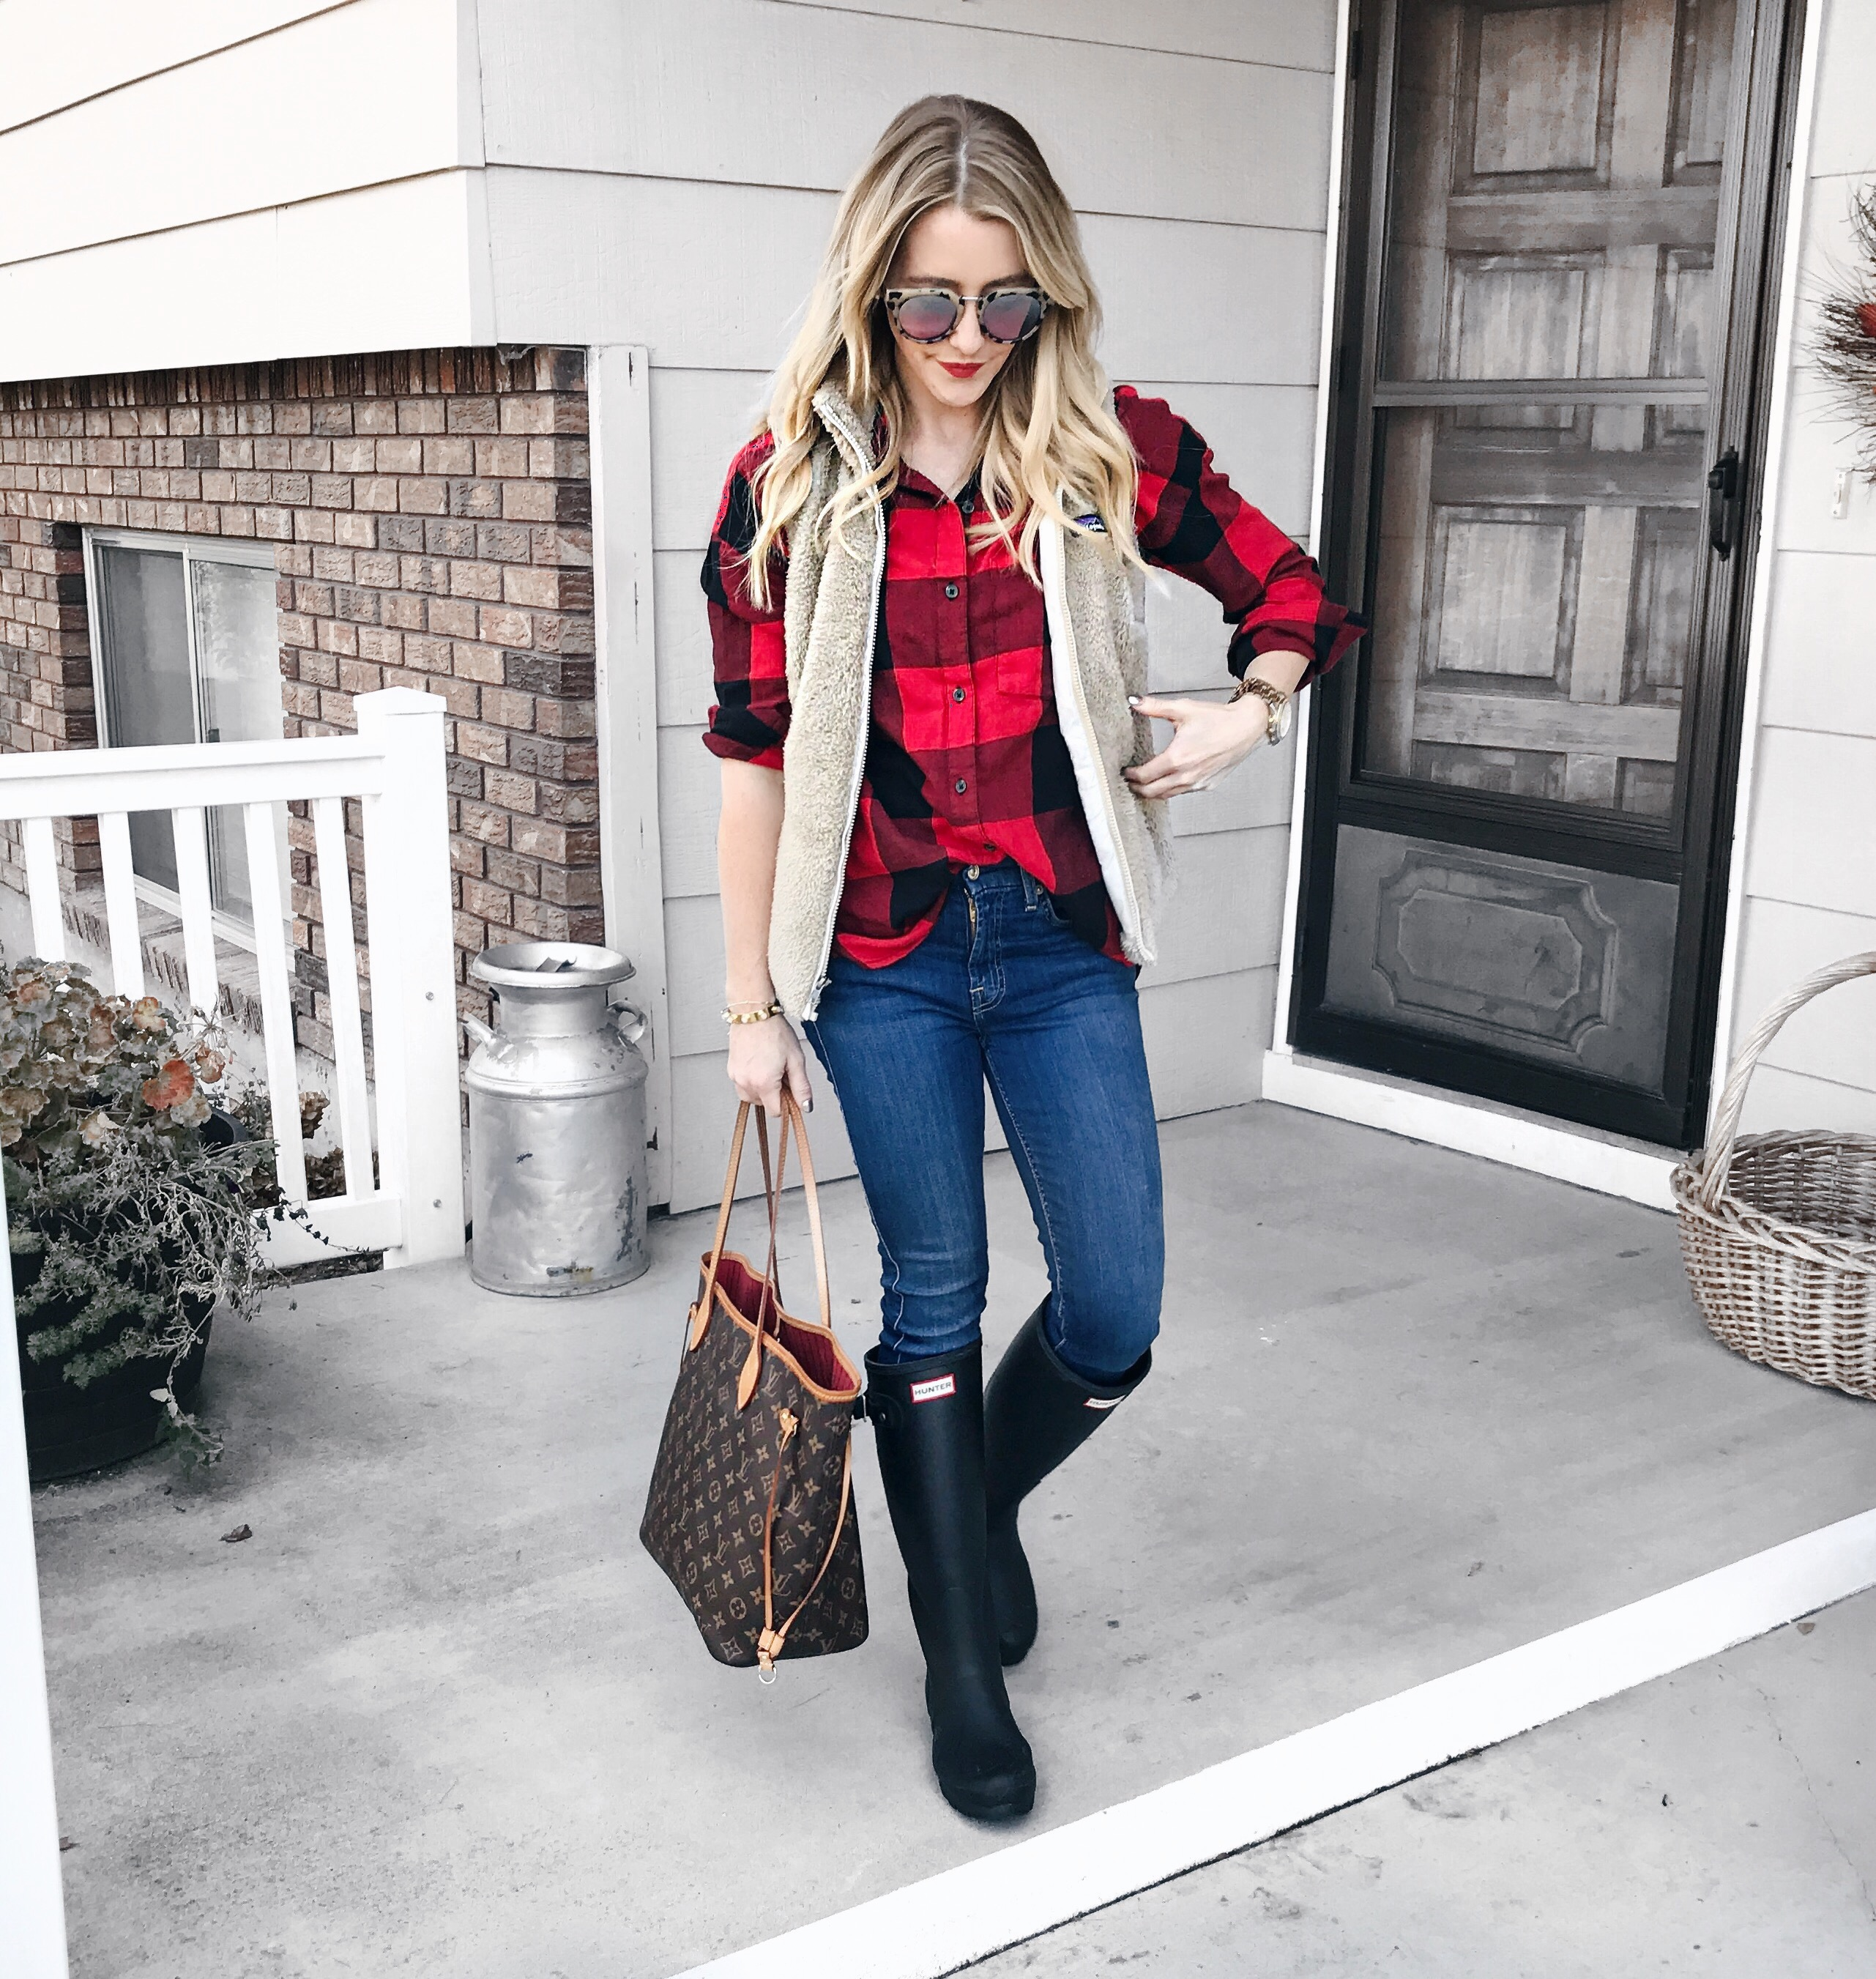 Instagram Fashion Roundup by popular San Francisco fashion blogger For the Love